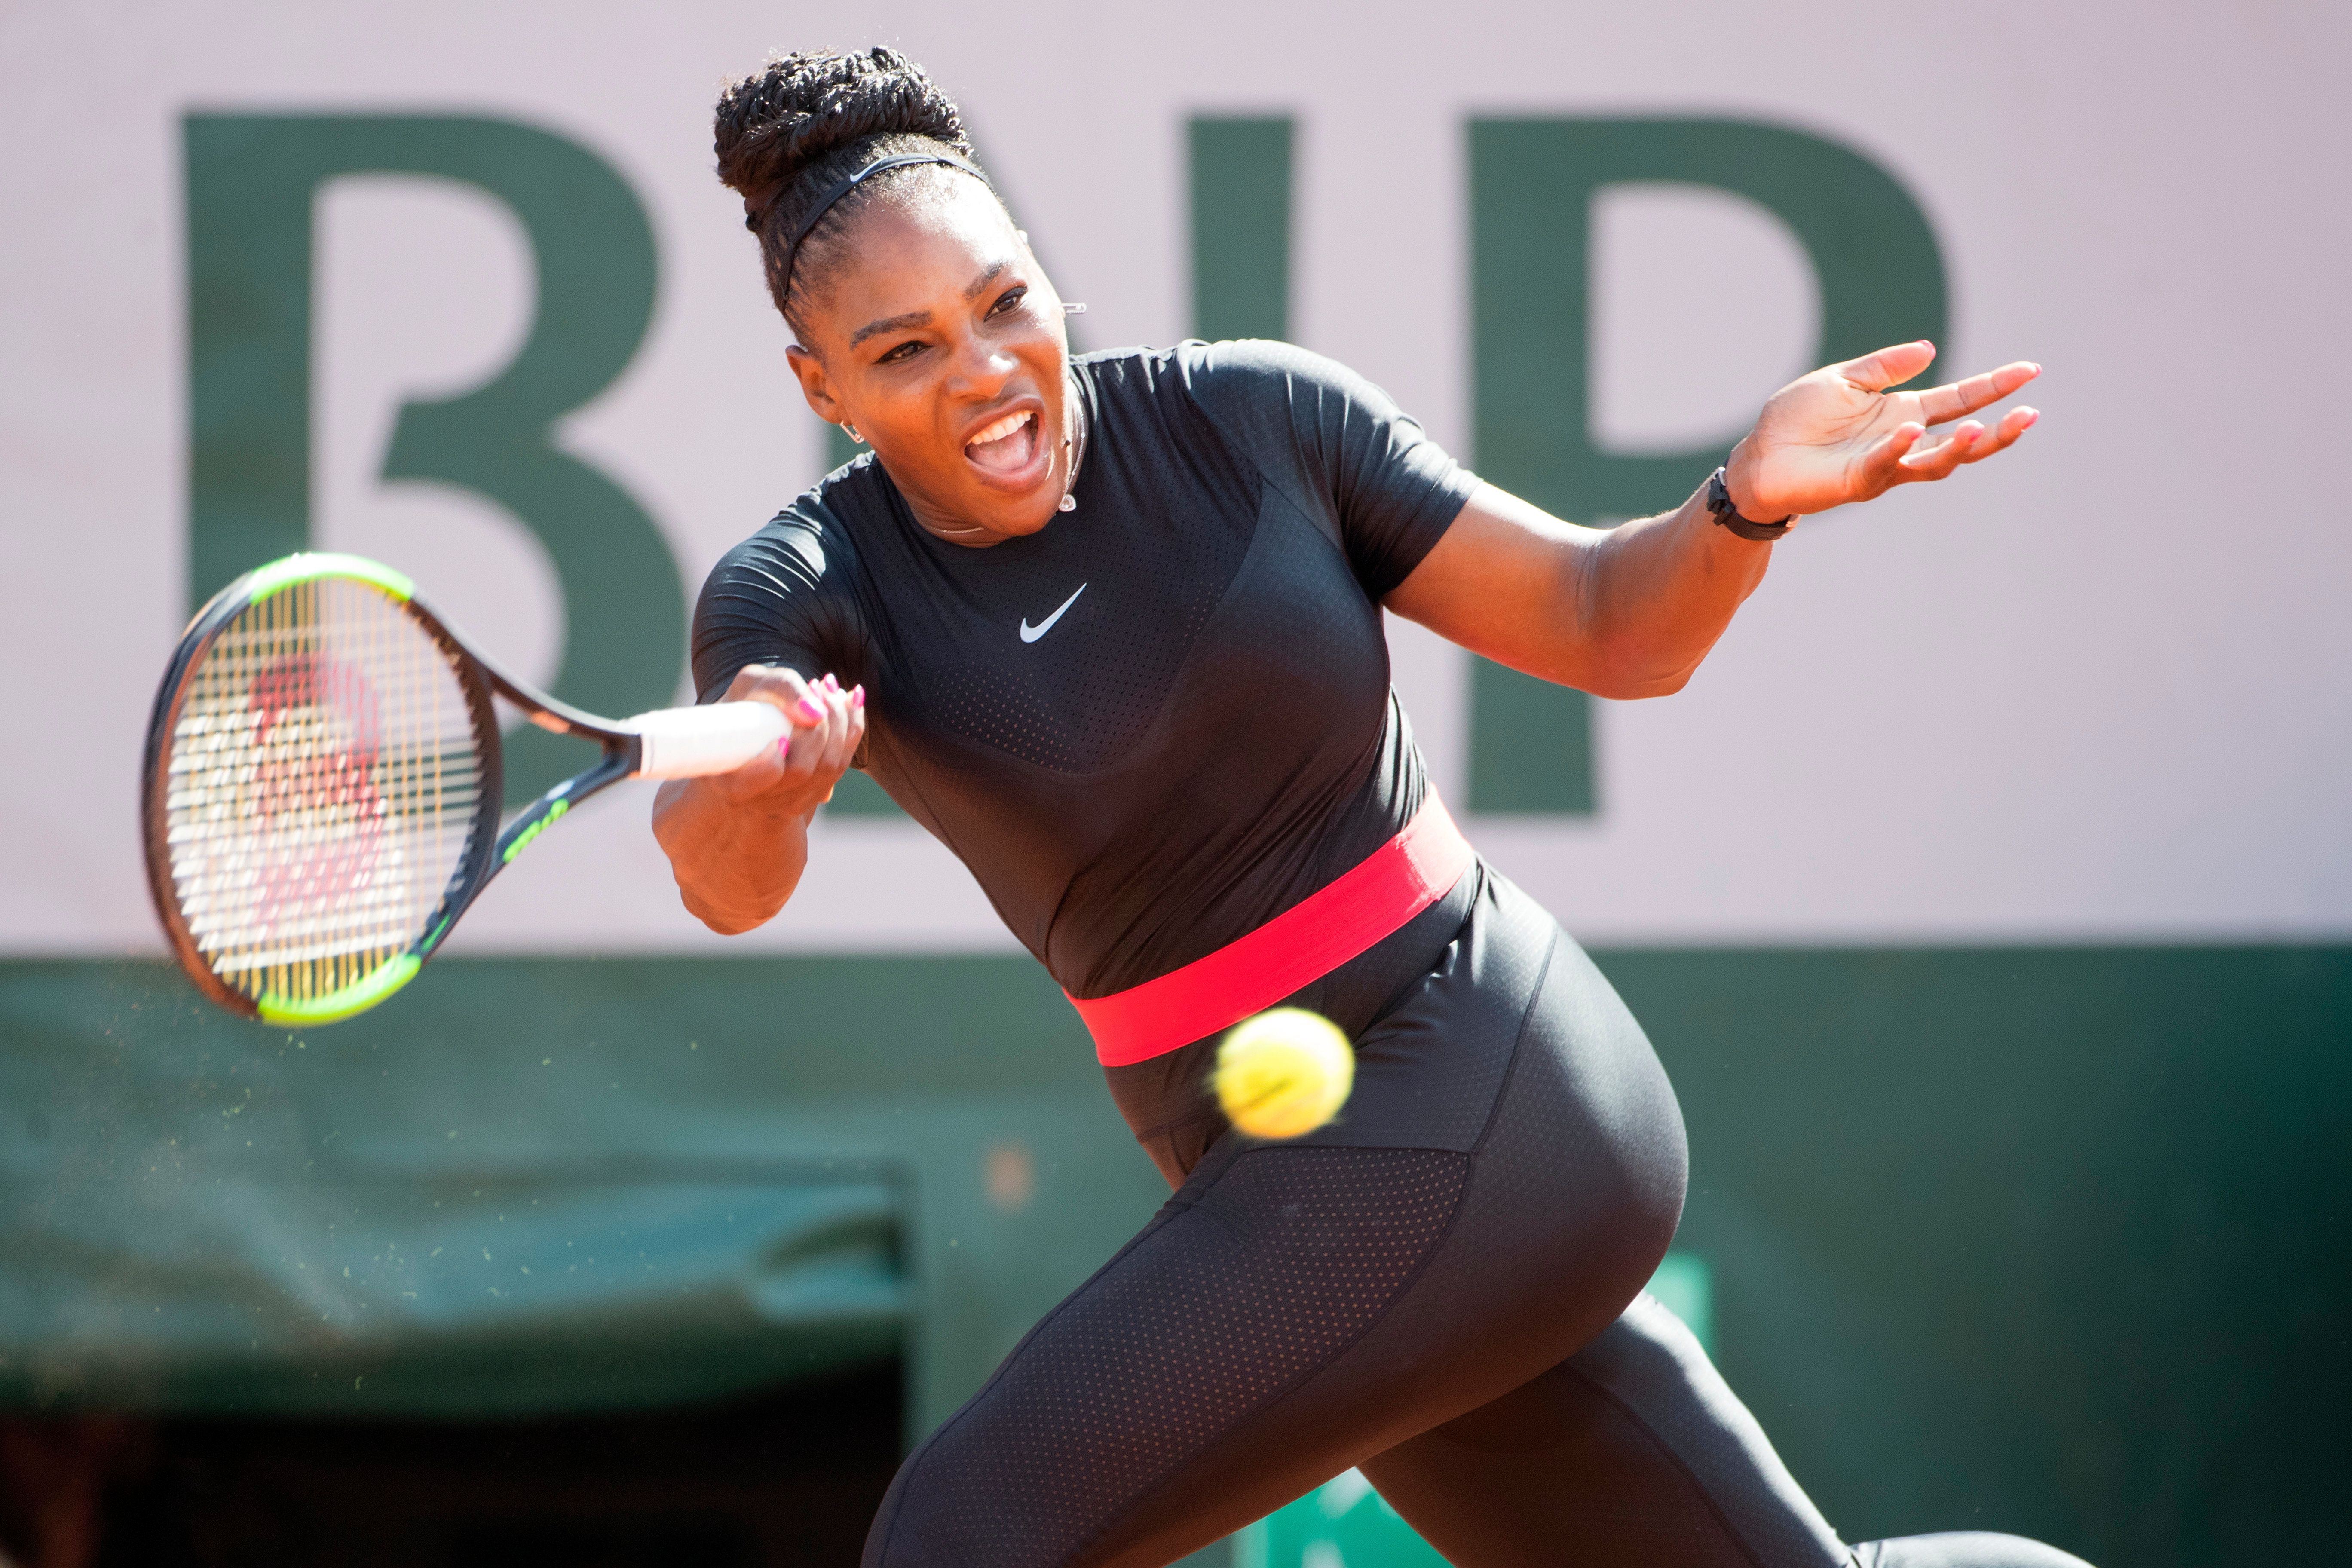 2018 French Open Tennis Tournament - Day Three.  Serena Williams of the United States in action against Kristyna Pliskova of the Czech Republic on Court Philippe-Chatrier in the Men's Singles Competition at the 2018 French Open Tennis Tournament at Roland Garros on May 29th 2018 in Paris, France.  (Photo by Tim Clayton/Corbis via Getty Images)